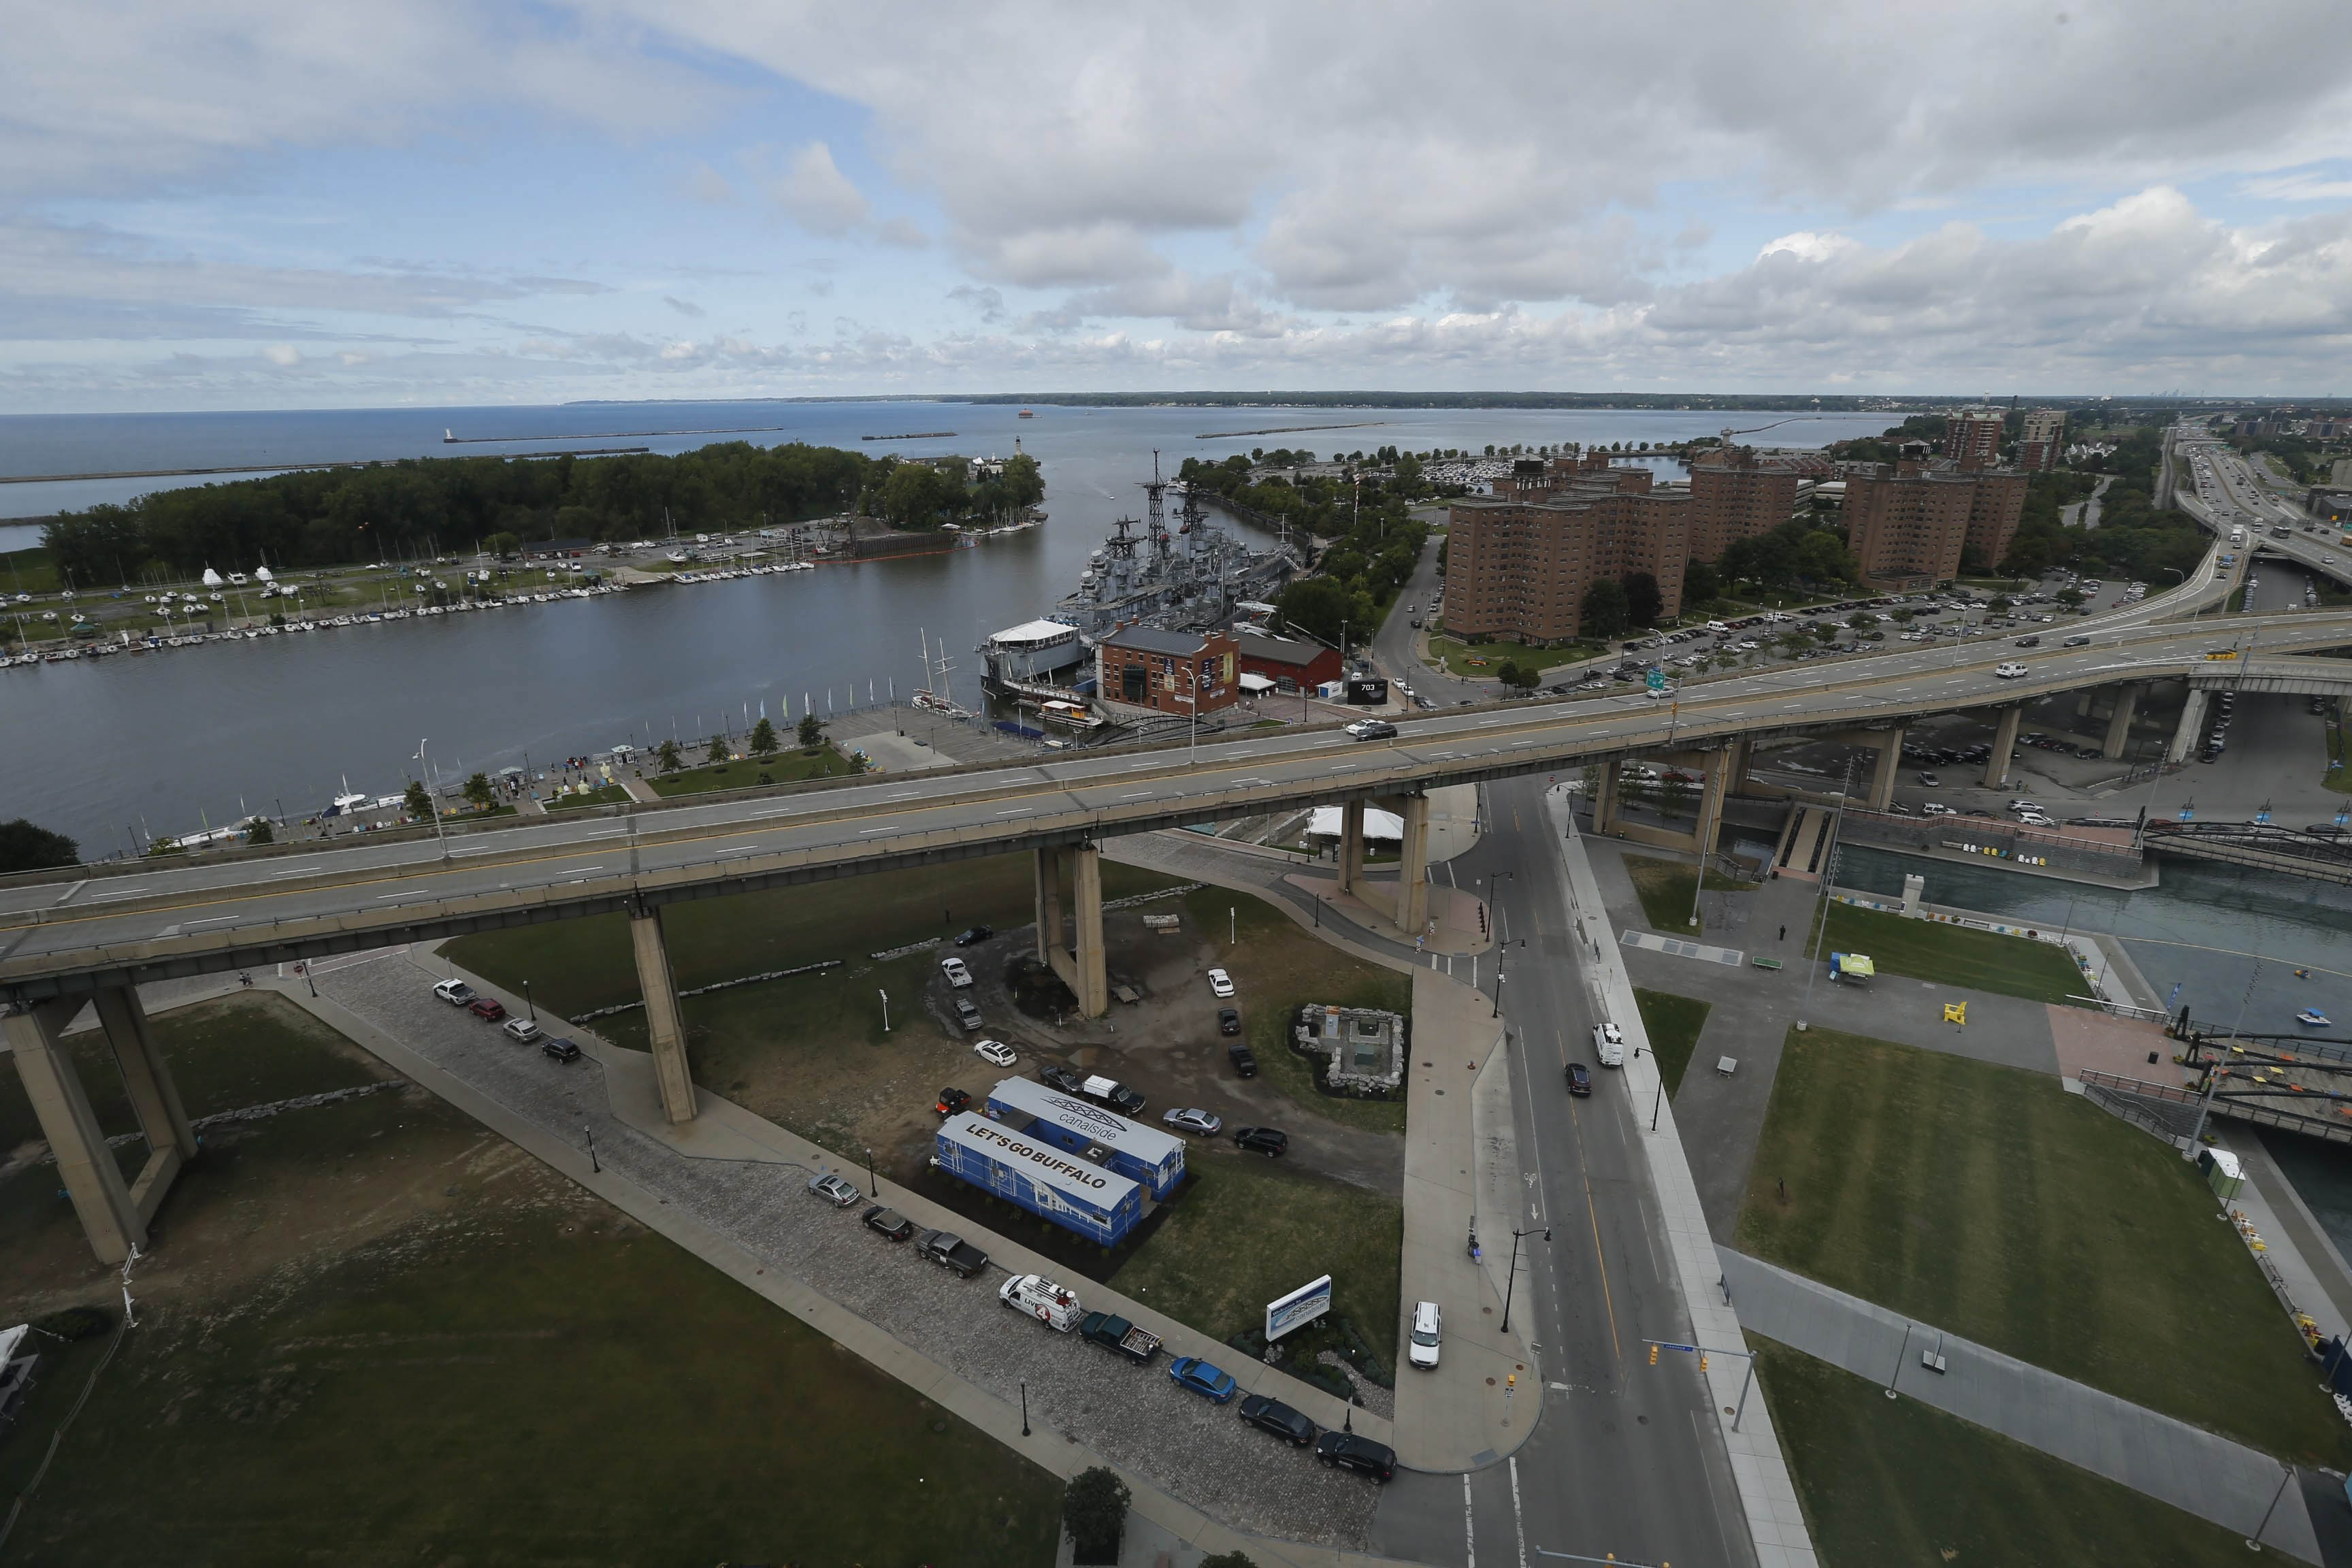 The Skyway looms above the property offered for development, but it isn't expected to be an impediment.